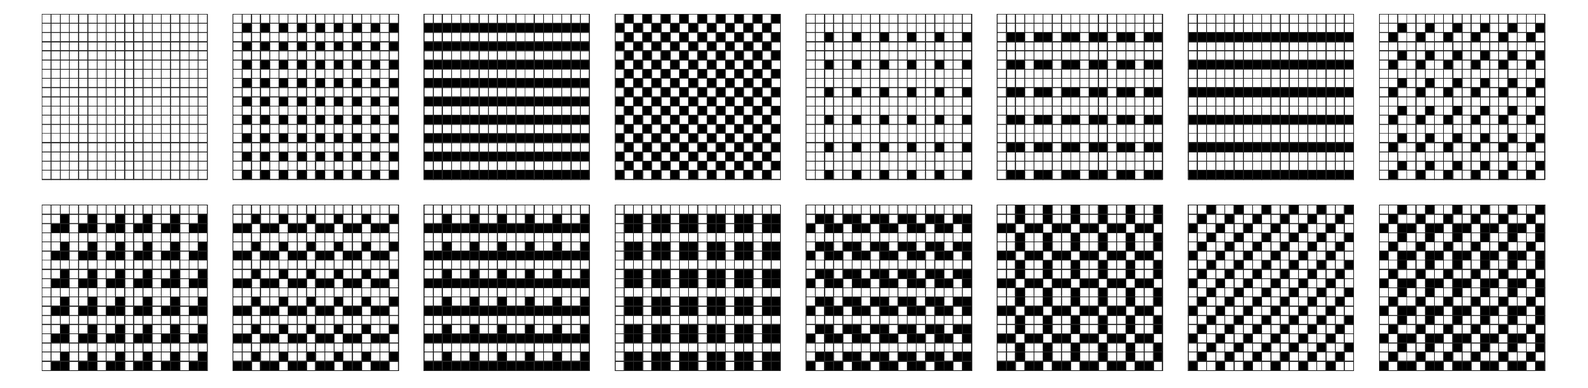 The distinct repetitive patterns that can be formed from arrays of 2×2 and 3×3 blocks